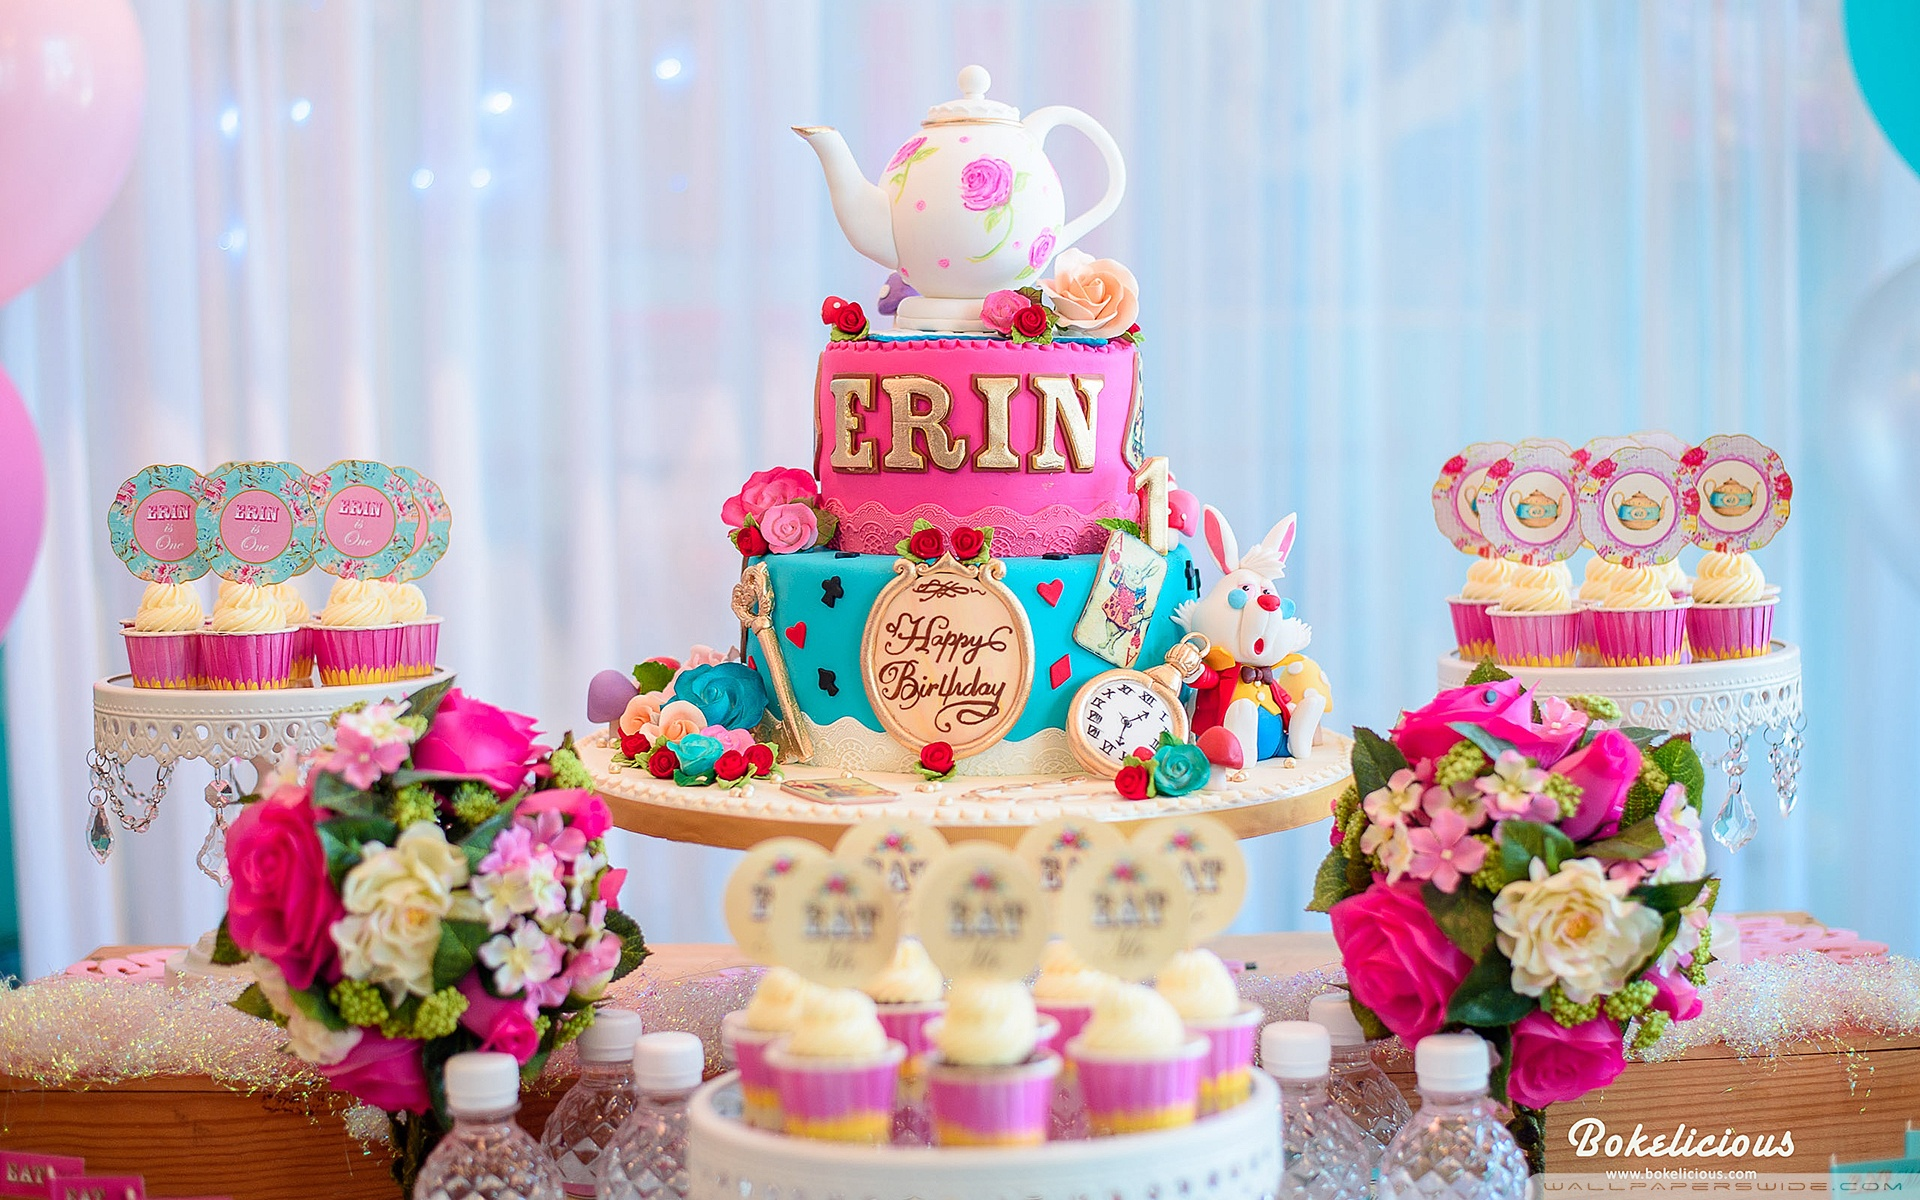 birthday party wallpaper ; birthday_party_cake_and_cupcakes-wallpaper-1920x1200